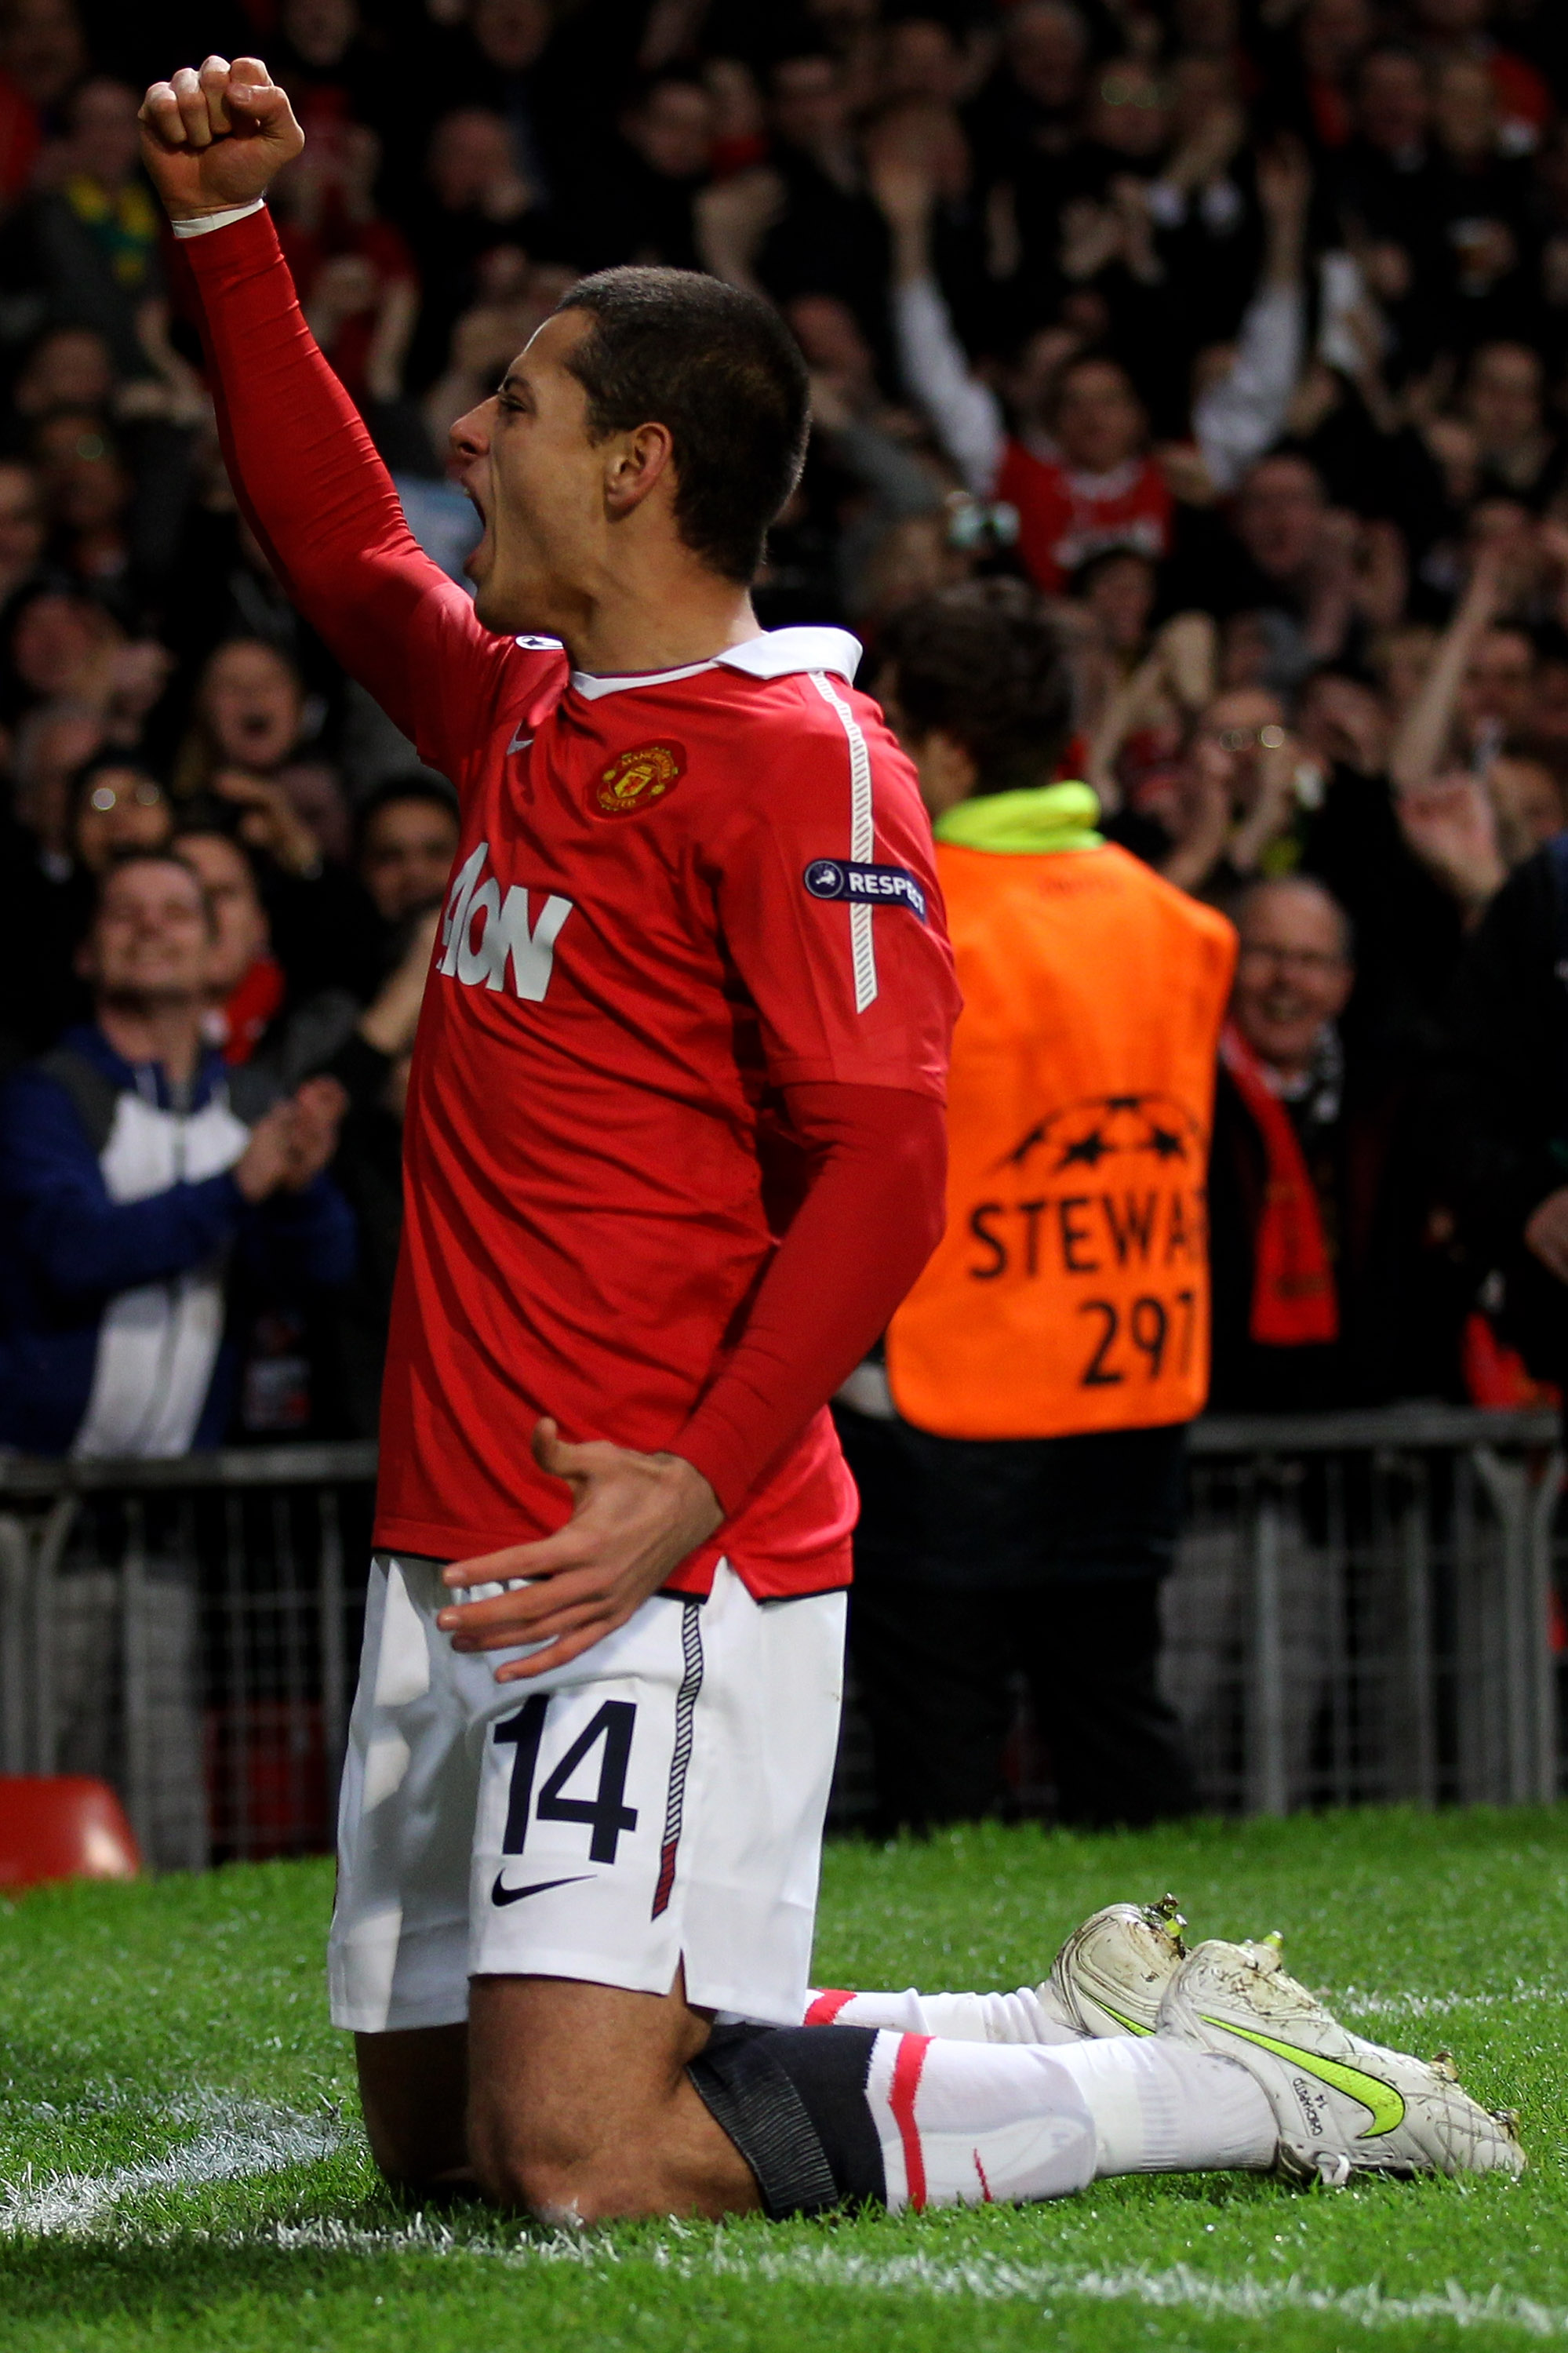 MANCHESTER, ENGLAND - MARCH 15:  Javier Hernandez of Manchester United celebrates scoring the opening goal during the UEFA Champions League round of 16 second leg match between Manchester United and Marseille at Old Trafford on March 15, 2011 in Mancheste